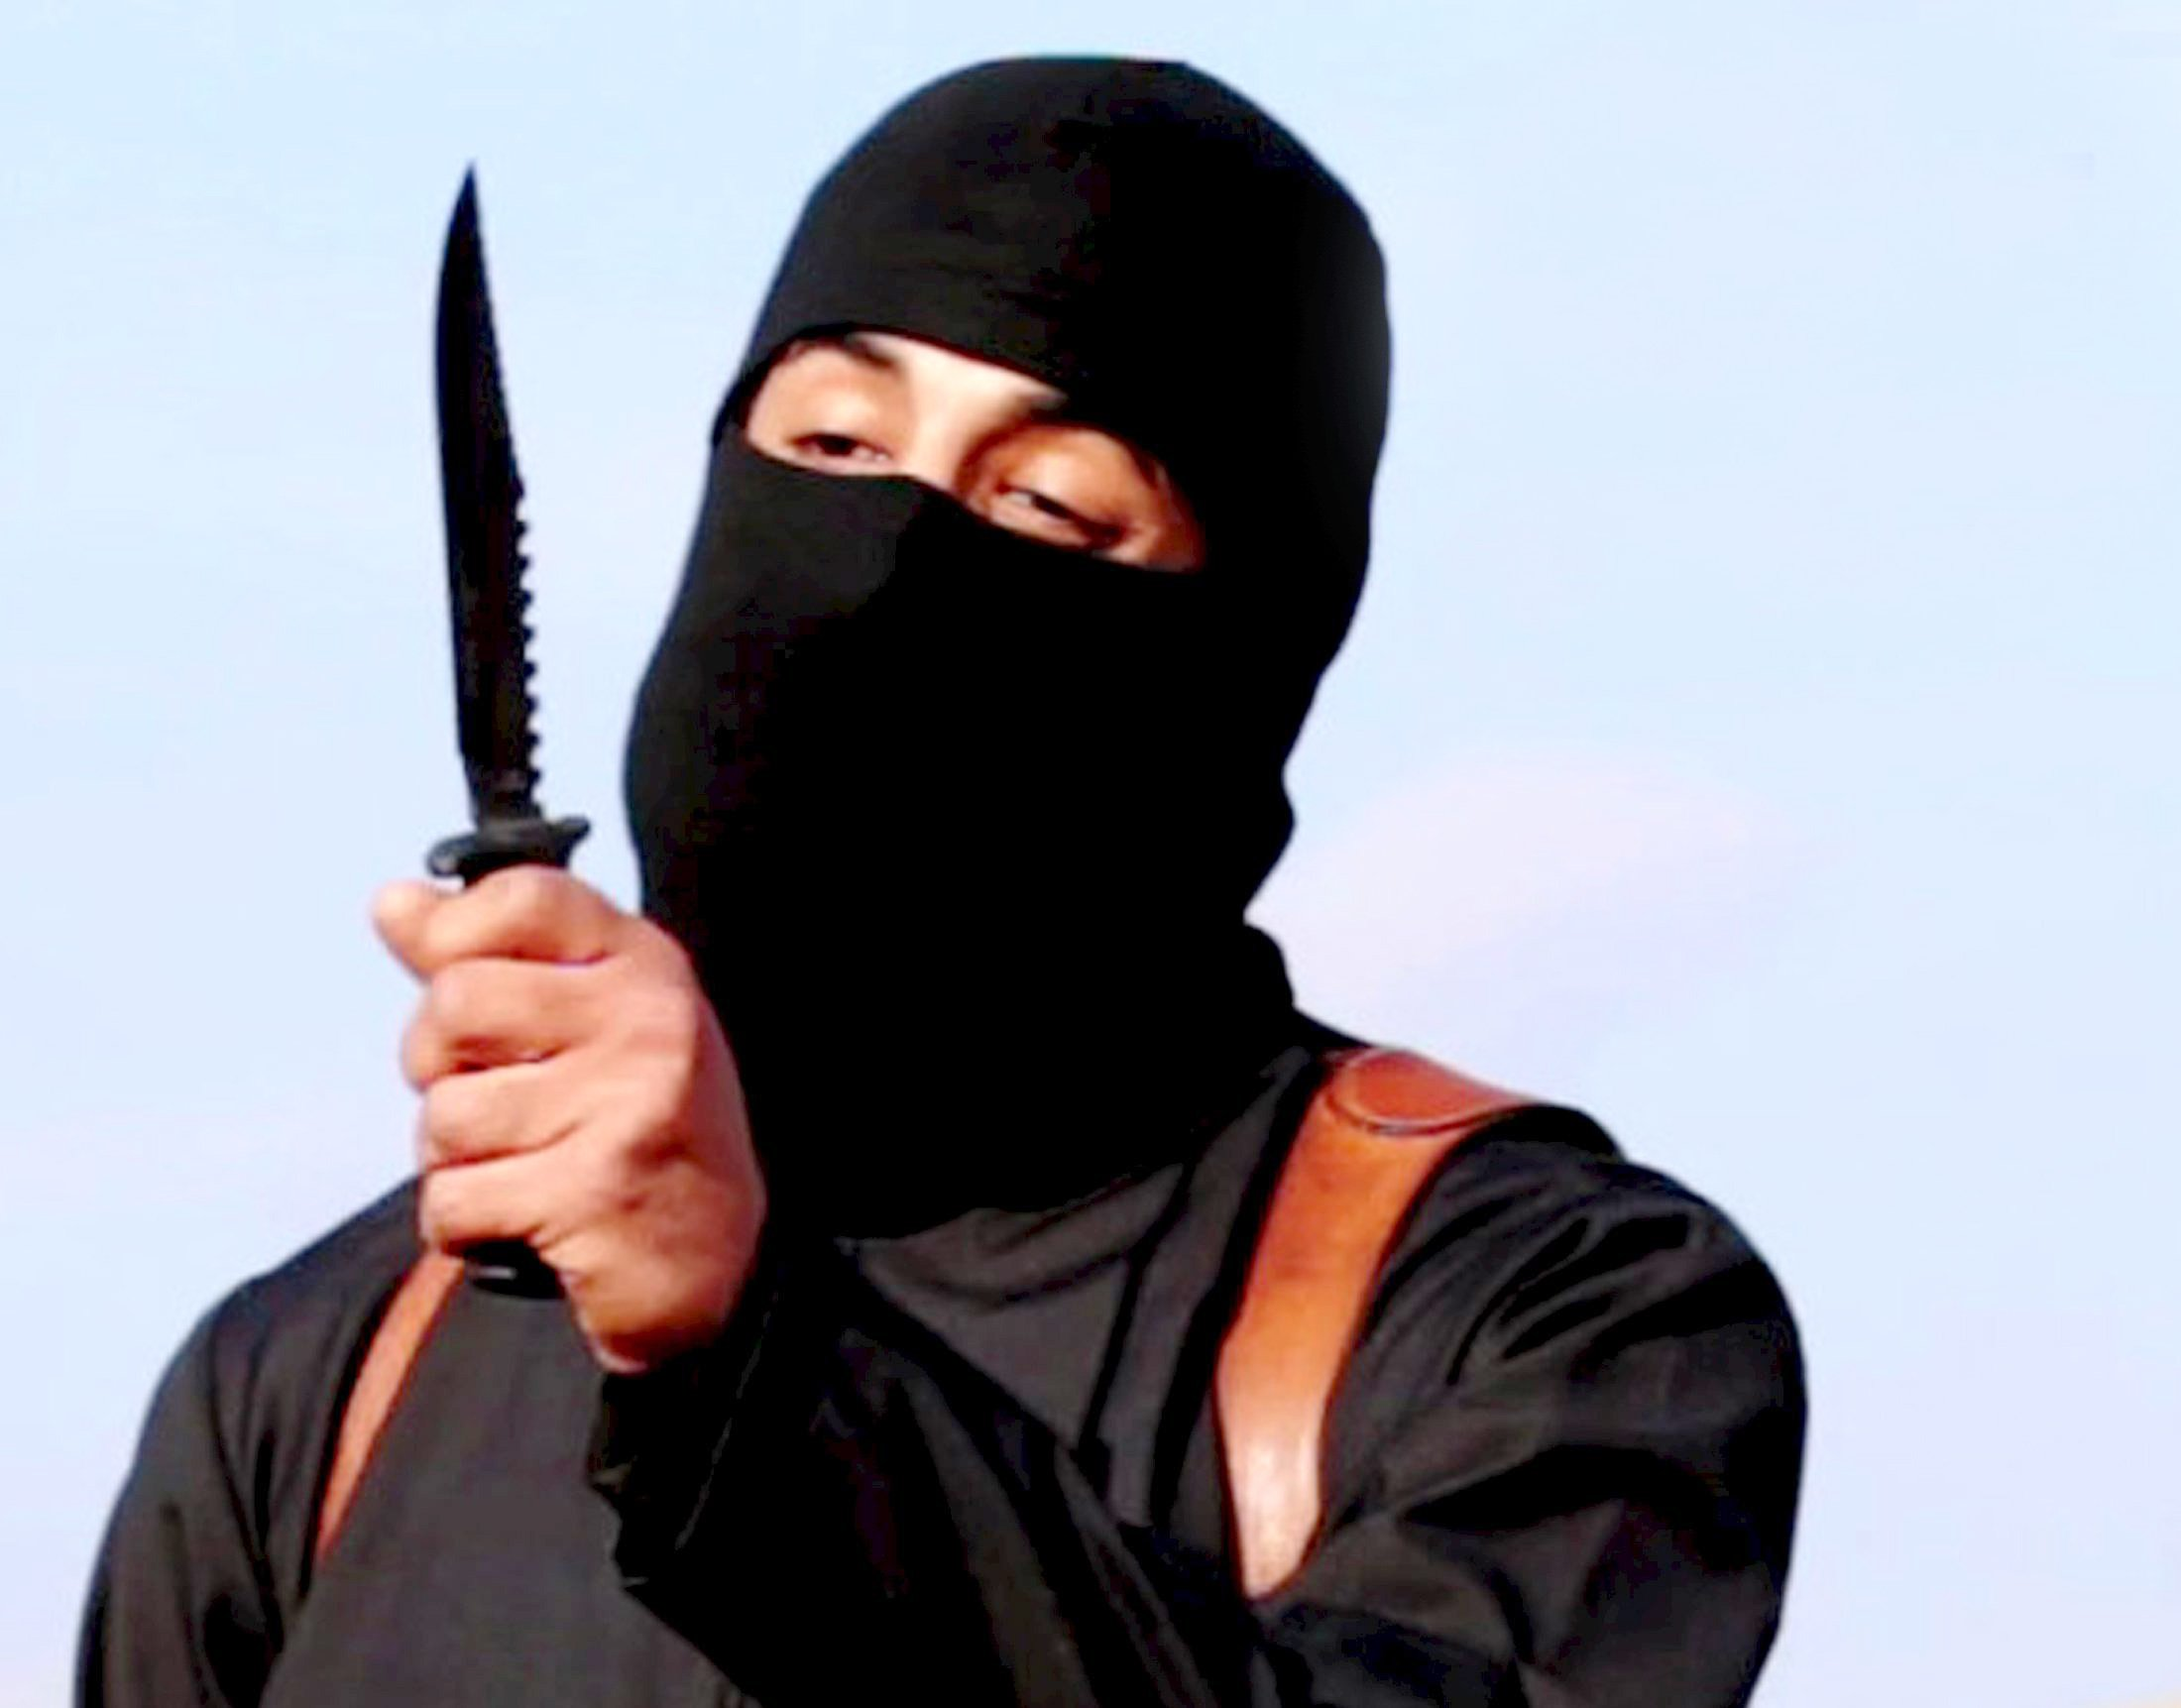 Drone strike that killed Jihadi John left 'a greasy spot on the ground'